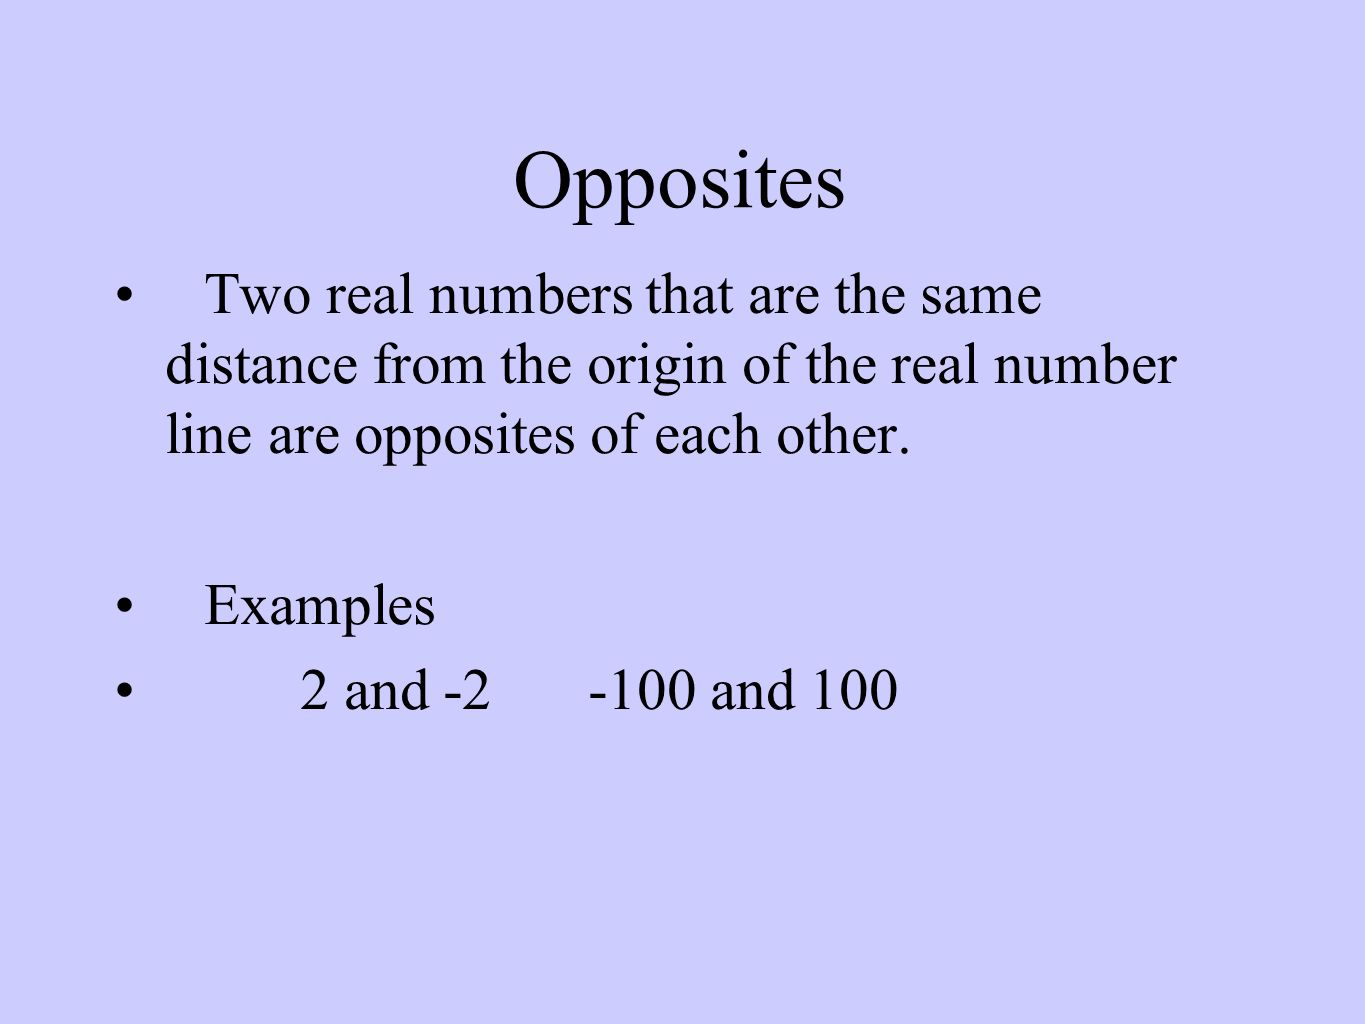 Opposites Two real numbers that are the same distance from the origin of the real number line are opposites of each other.